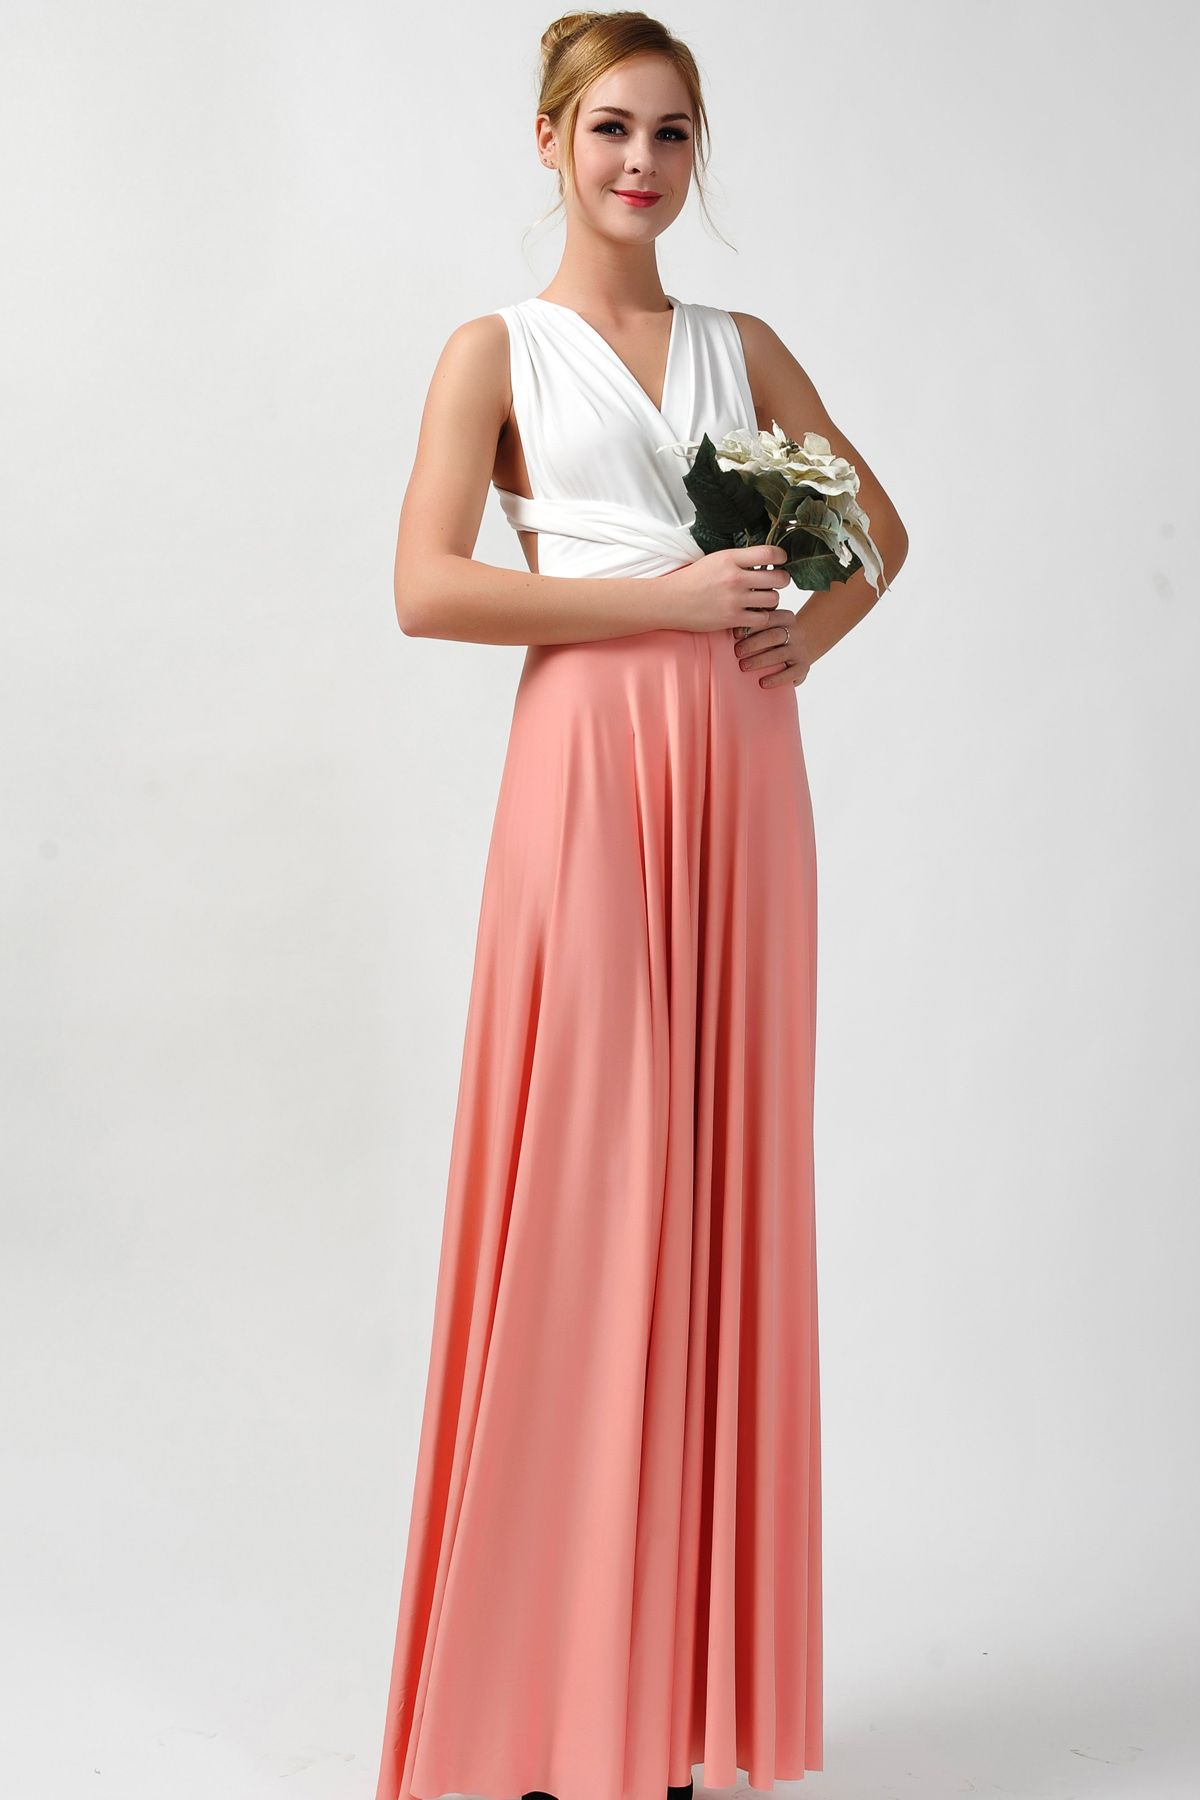 2016 new arrival maxi infinity bridesmaid dress two tone [tt-15 ...